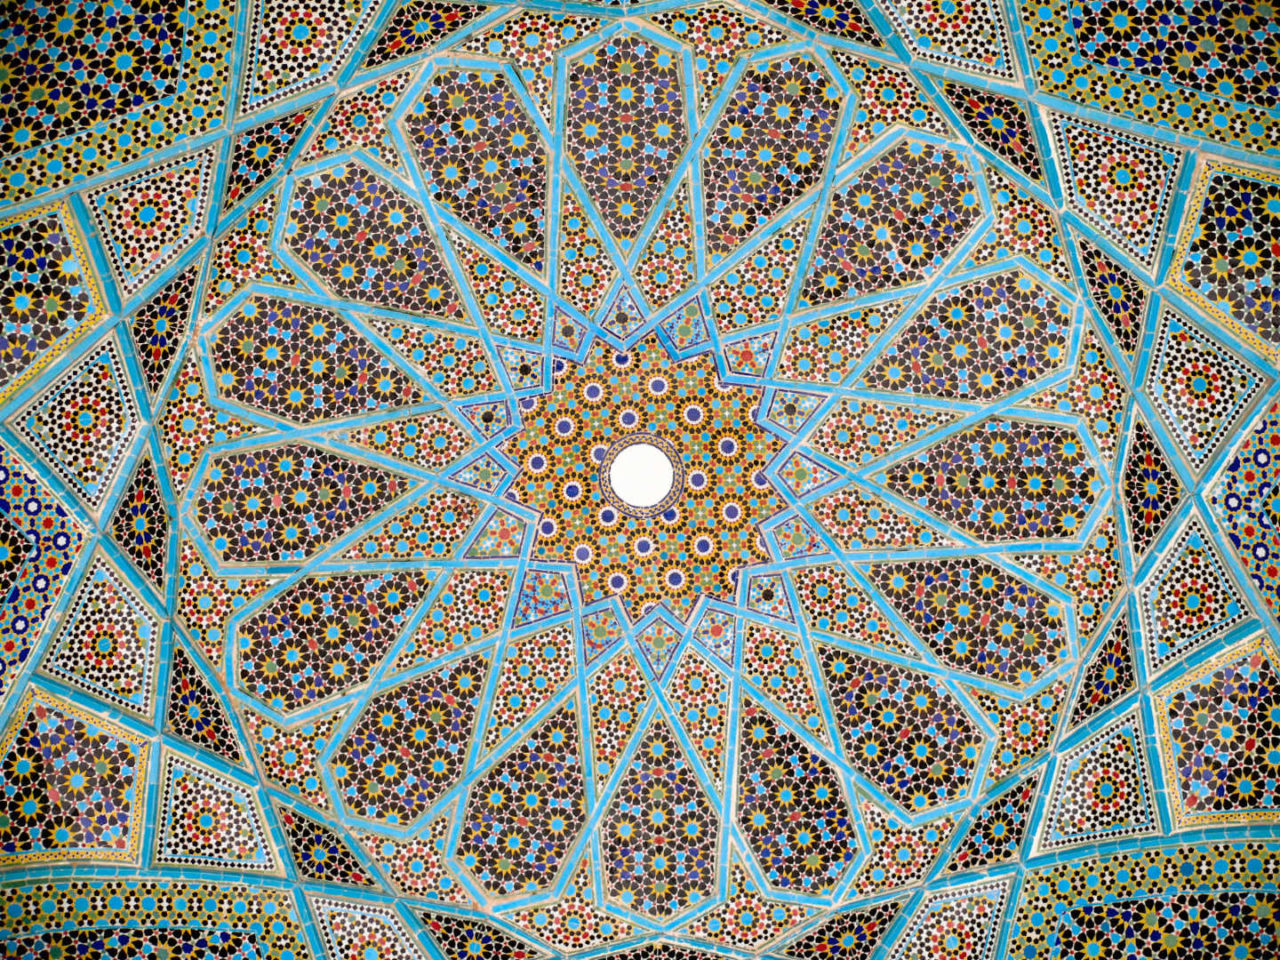 https://thesubmarine.it/wp-content/uploads/2017/06/Roof_hafez_tomb-1280x960.jpg